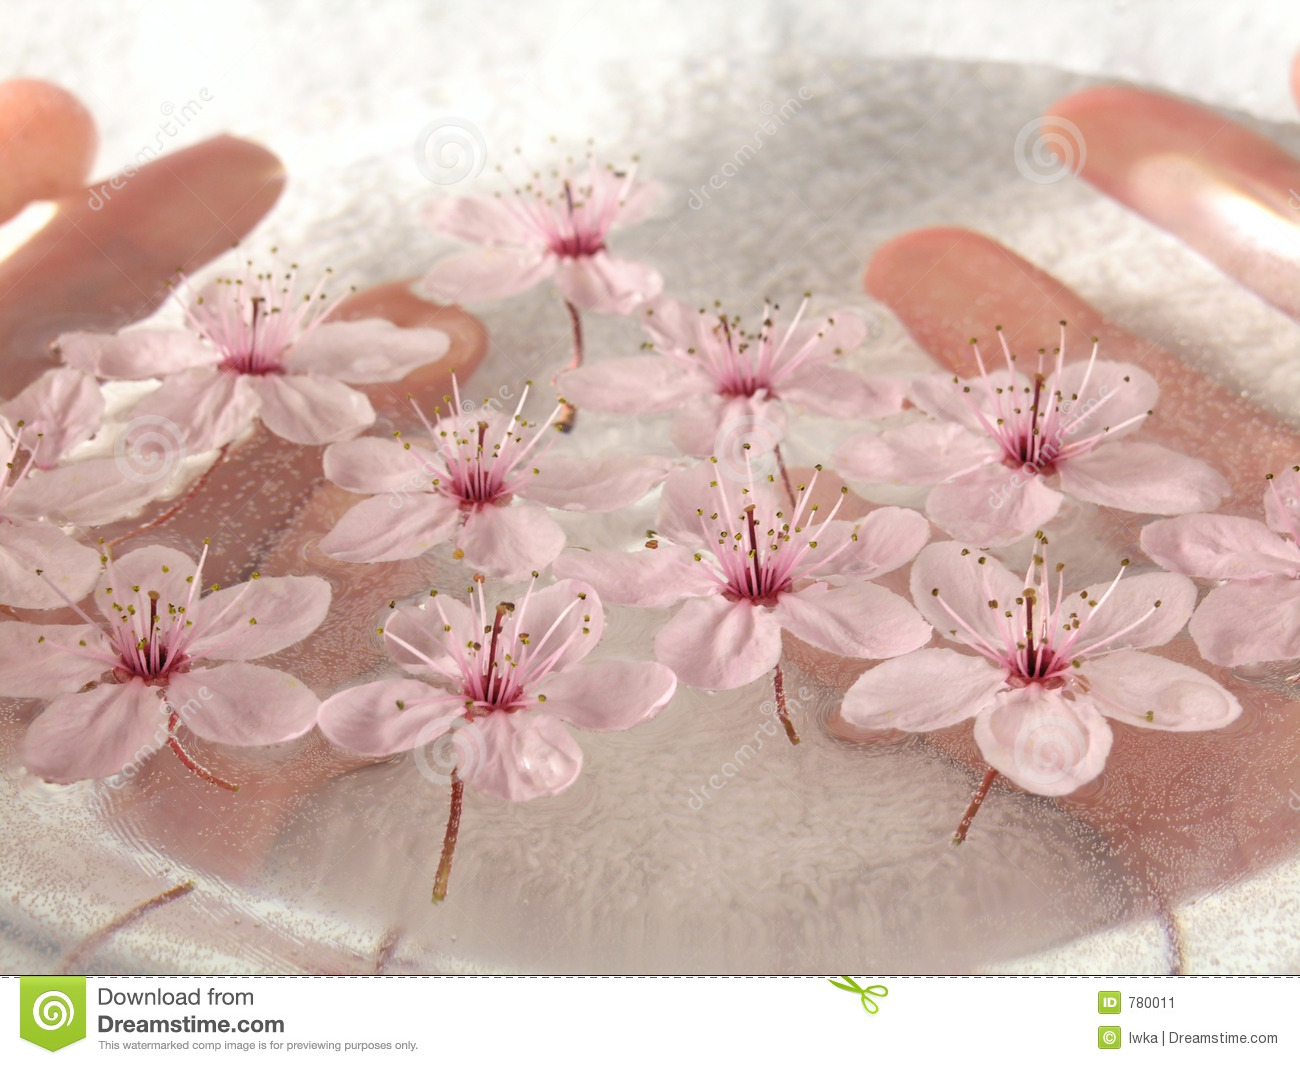 home spa - a litte pink flowers stock photo - image: 779980